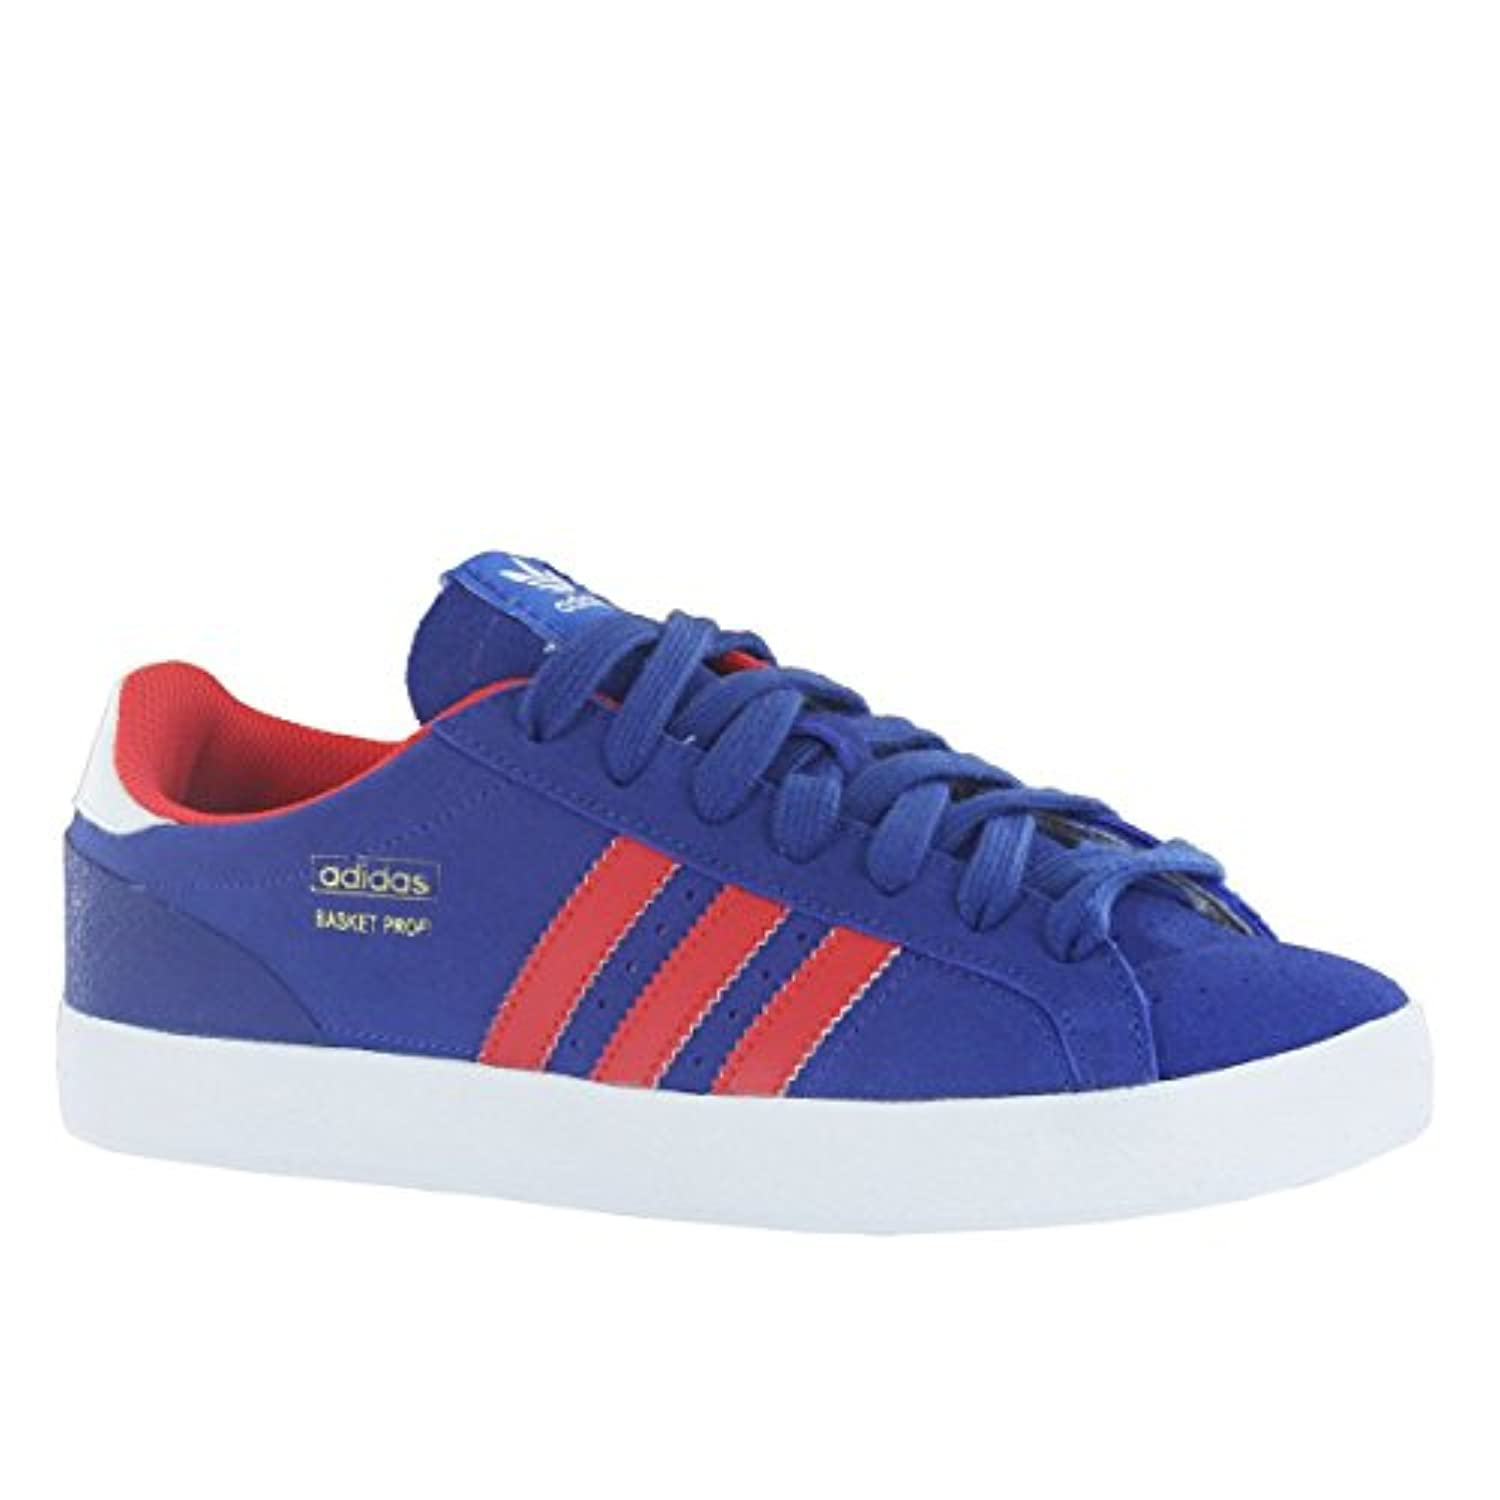 Adidas Originals Basket Profi Low K Blue / White / Orange